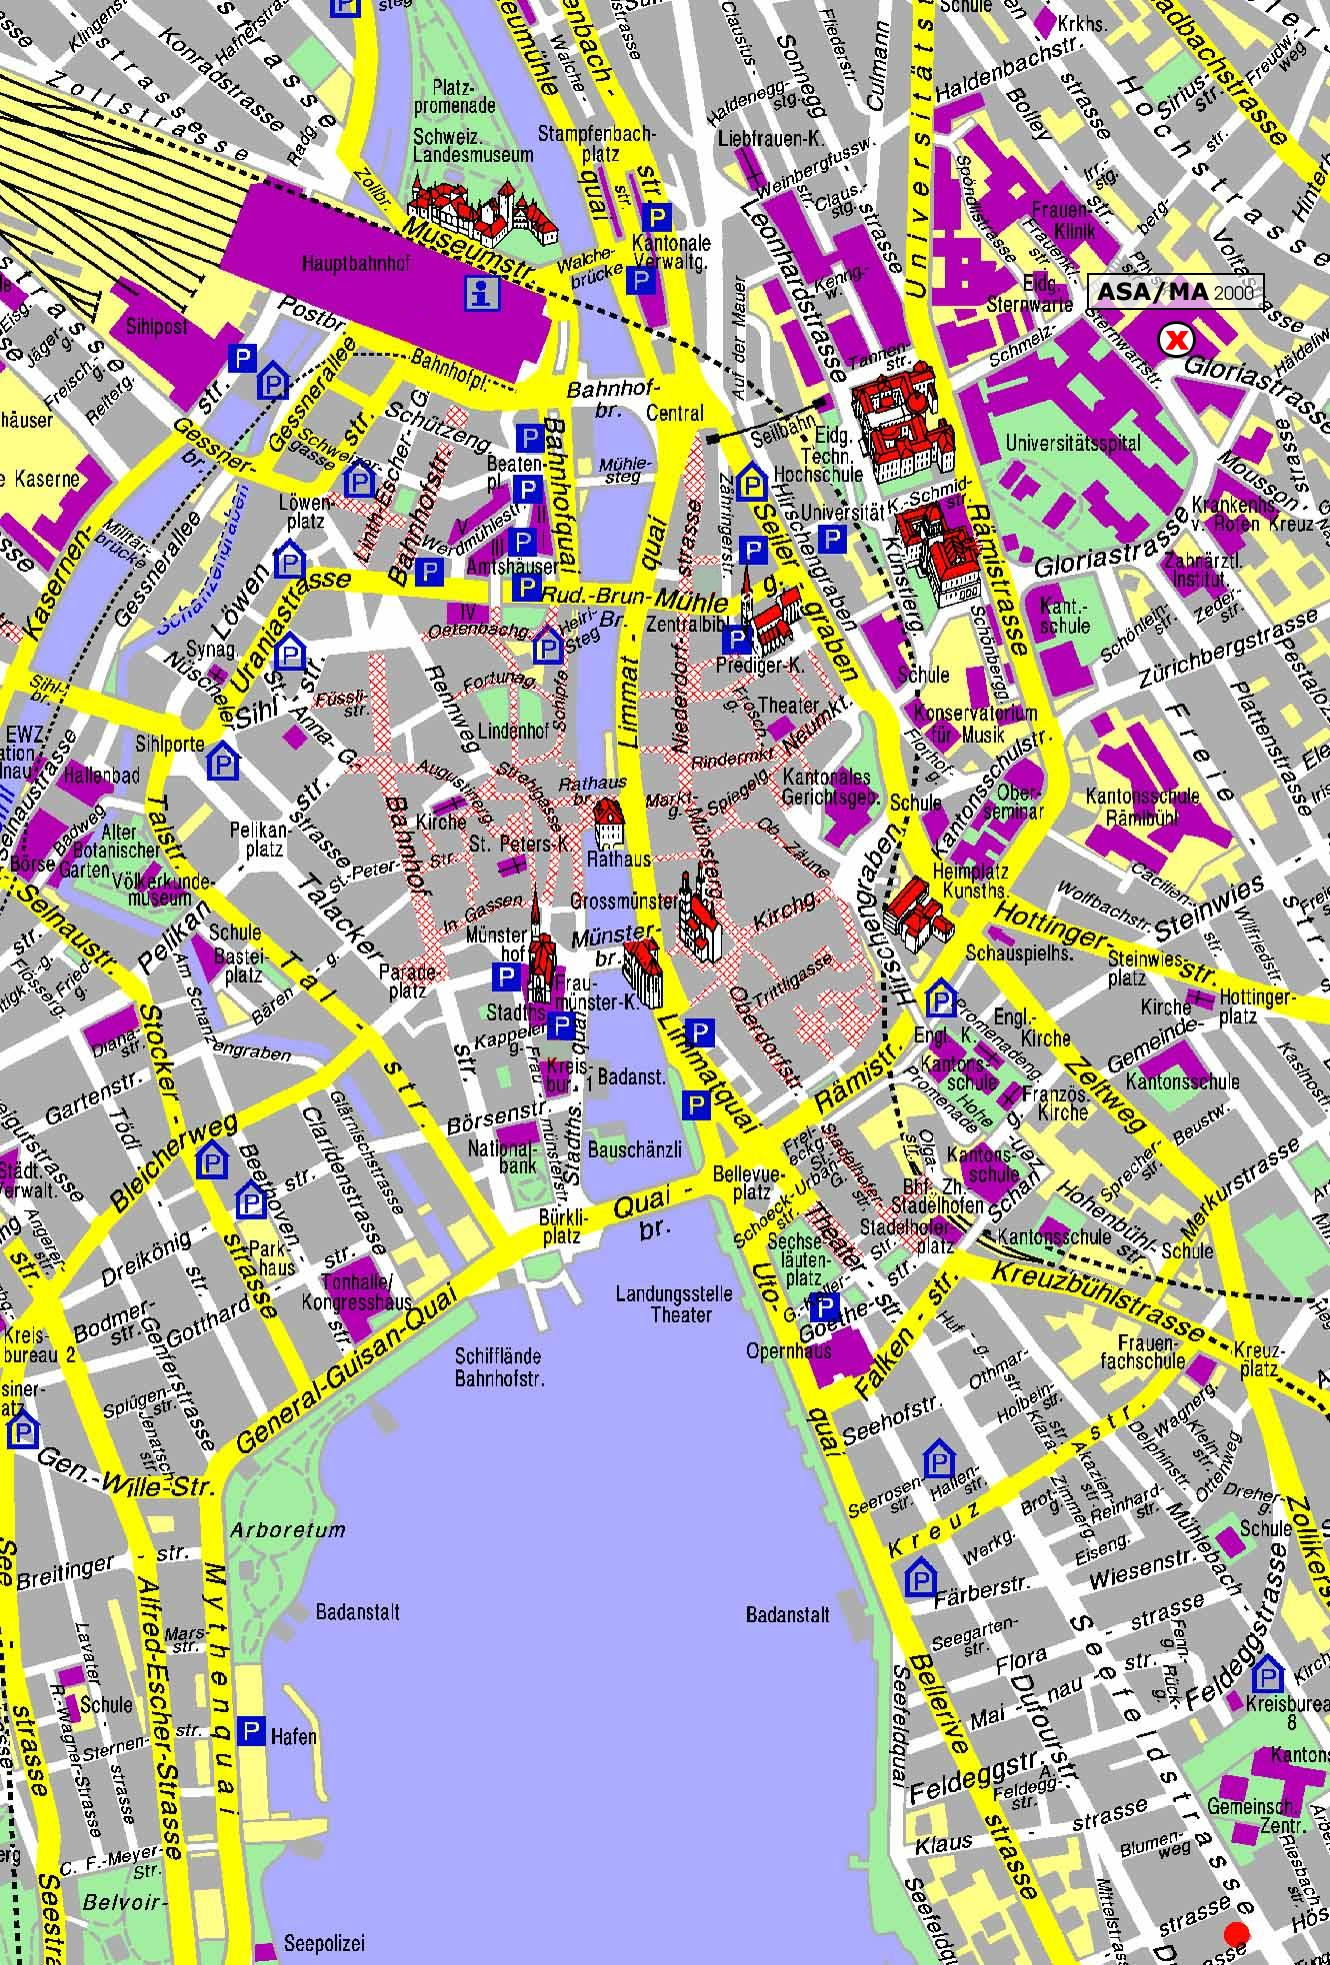 Zurich Map - Detailed City and Metro Maps of Zurich for Download